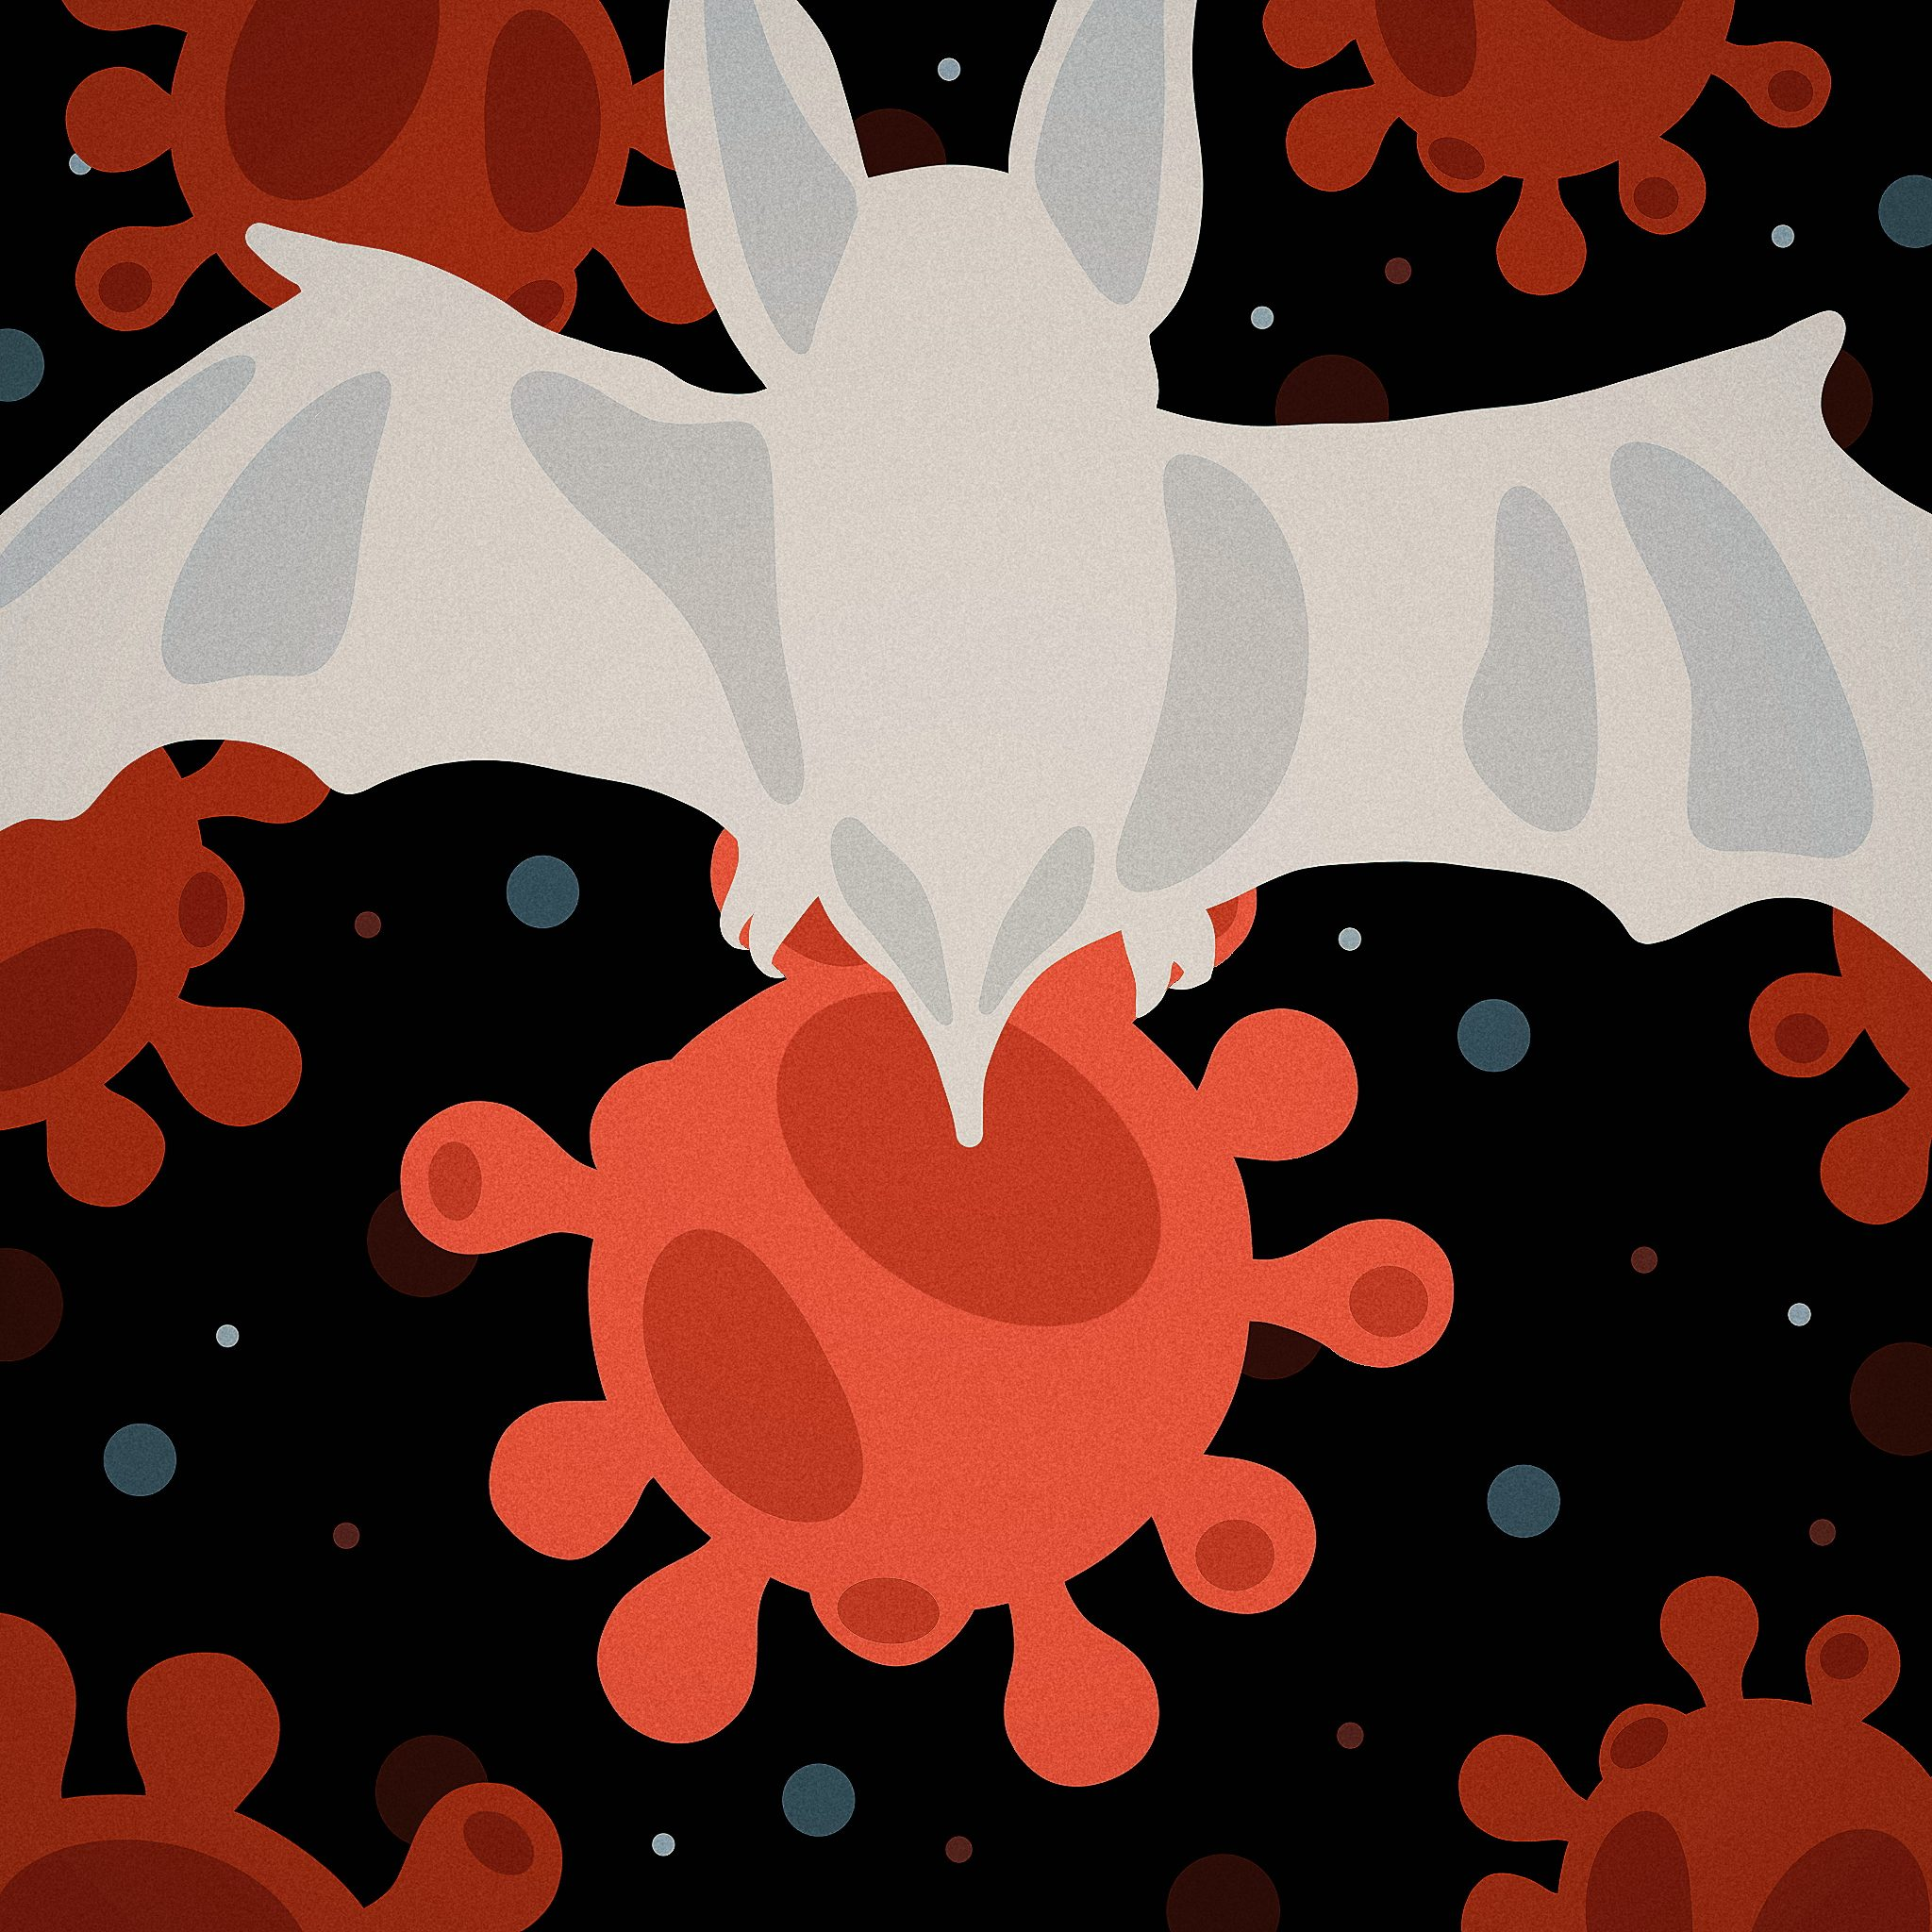 07/15 News Flash 3: How Bats Live Longer and Tolerate Viruses